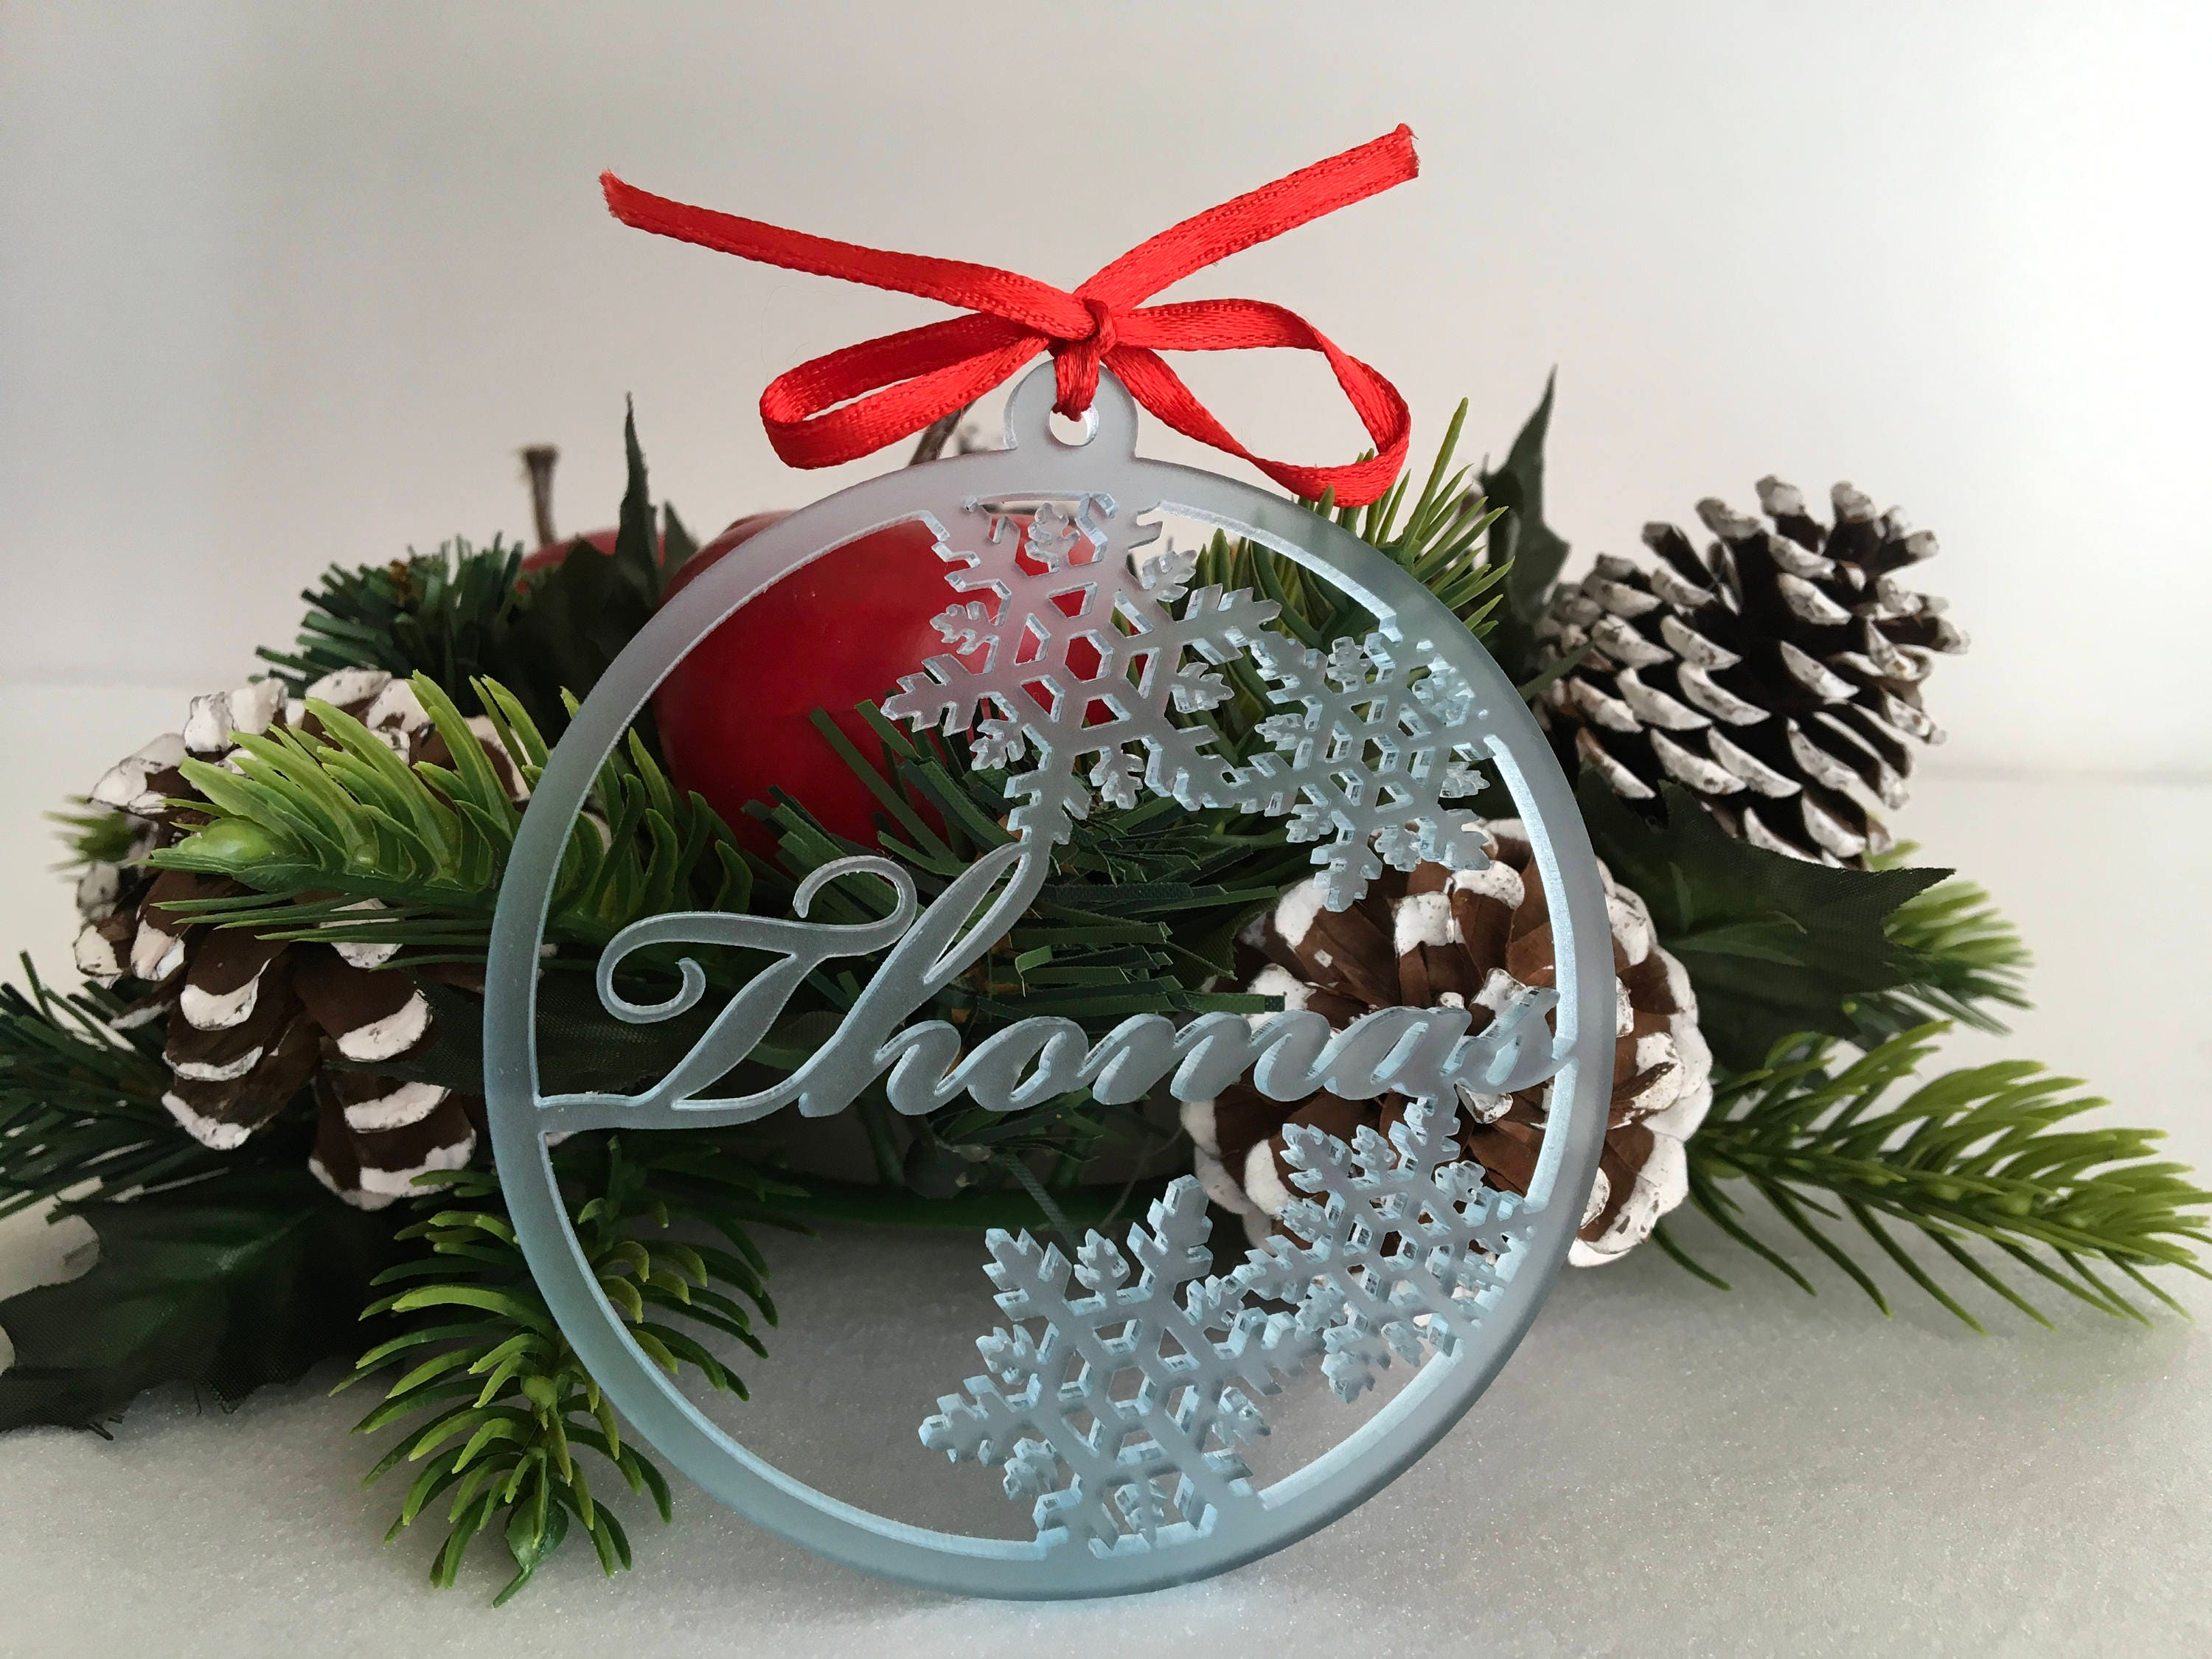 personalised christmas baubles frosted acrylic names baby blue gift tags custom ornaments personalized name tree decorations christmas gift - Christmas Tree Decorations Names